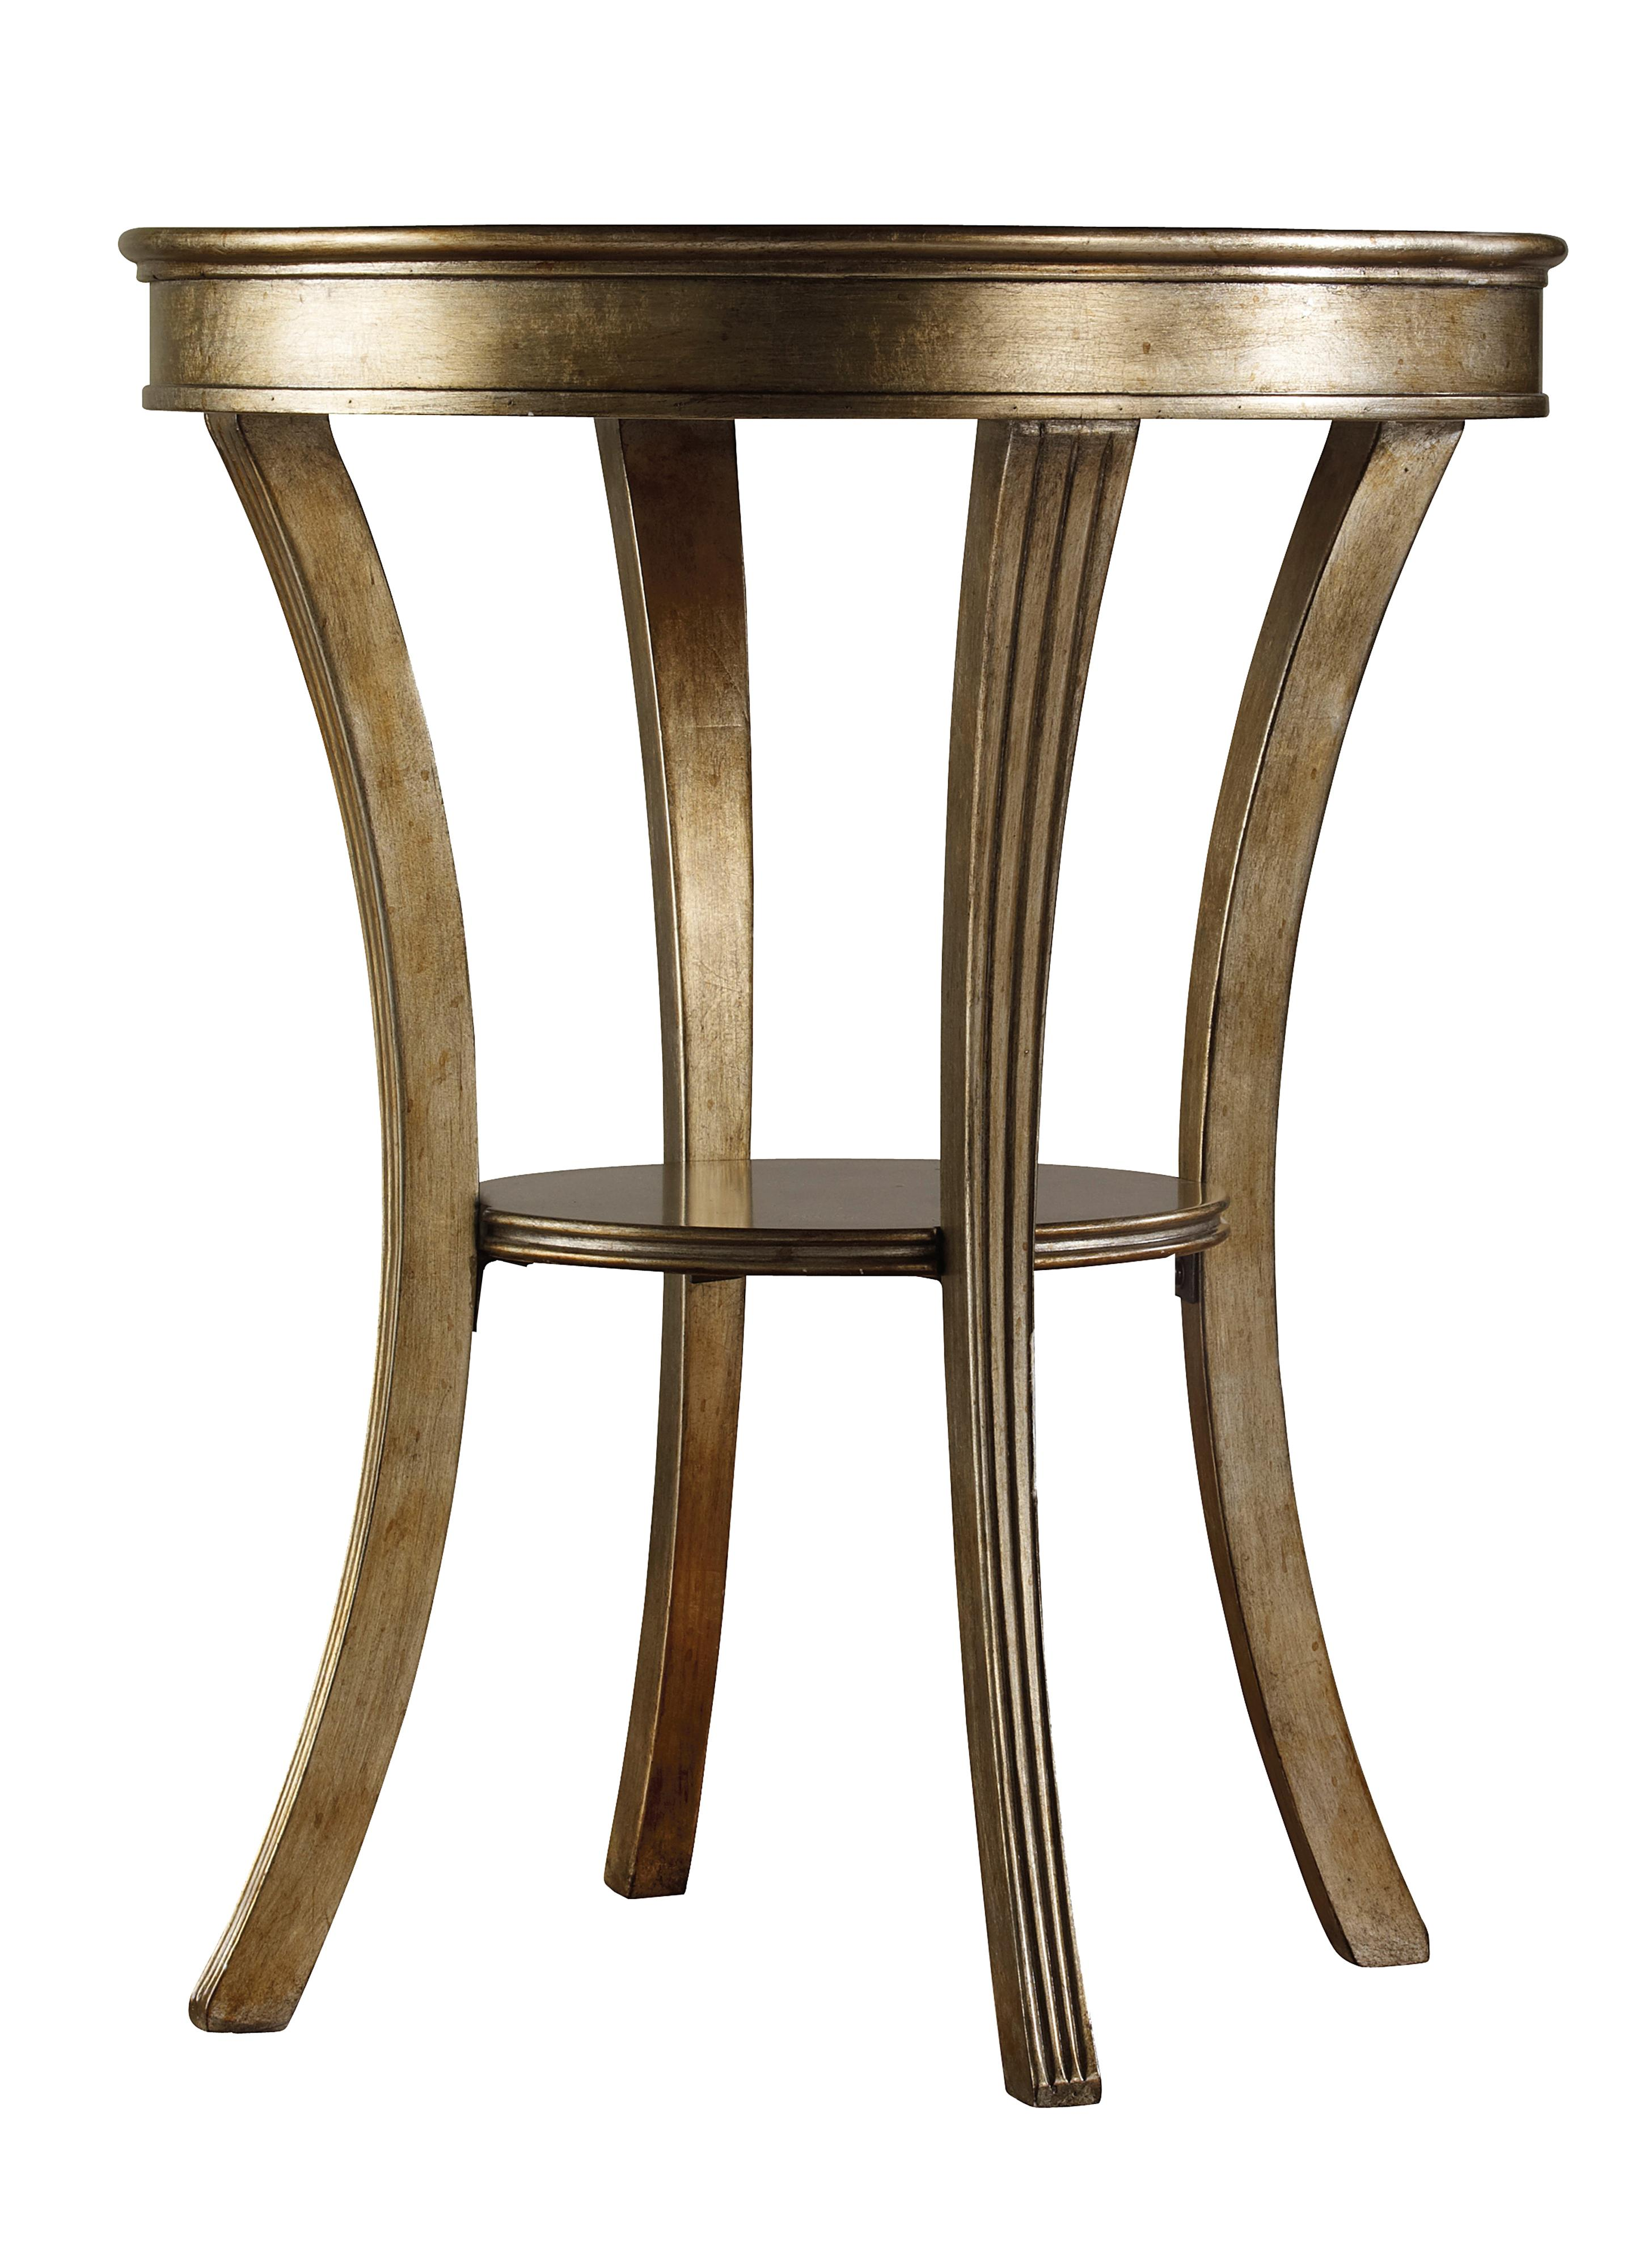 Hooker Furniture Sanctuary Round Mirrored Accent Table  - Item Number: 3014-50001